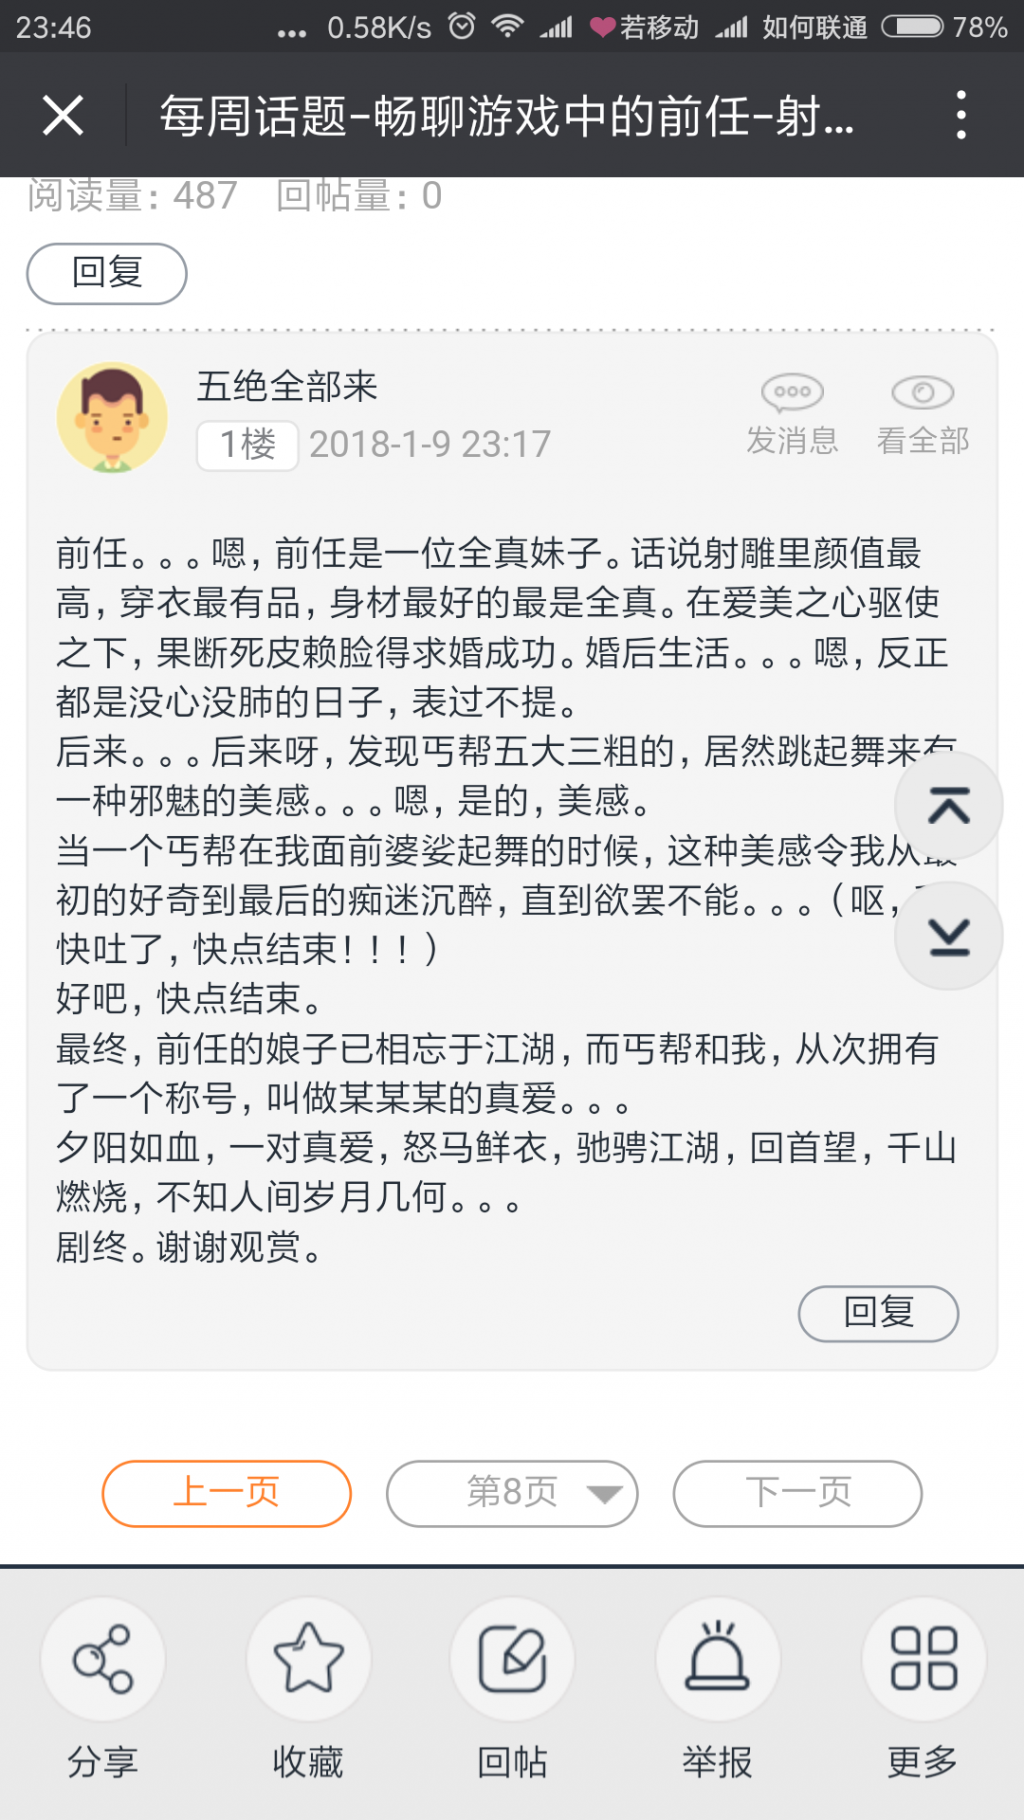 Screenshot_2018-01-09-23-46-59-481_com.tencent.mm.png